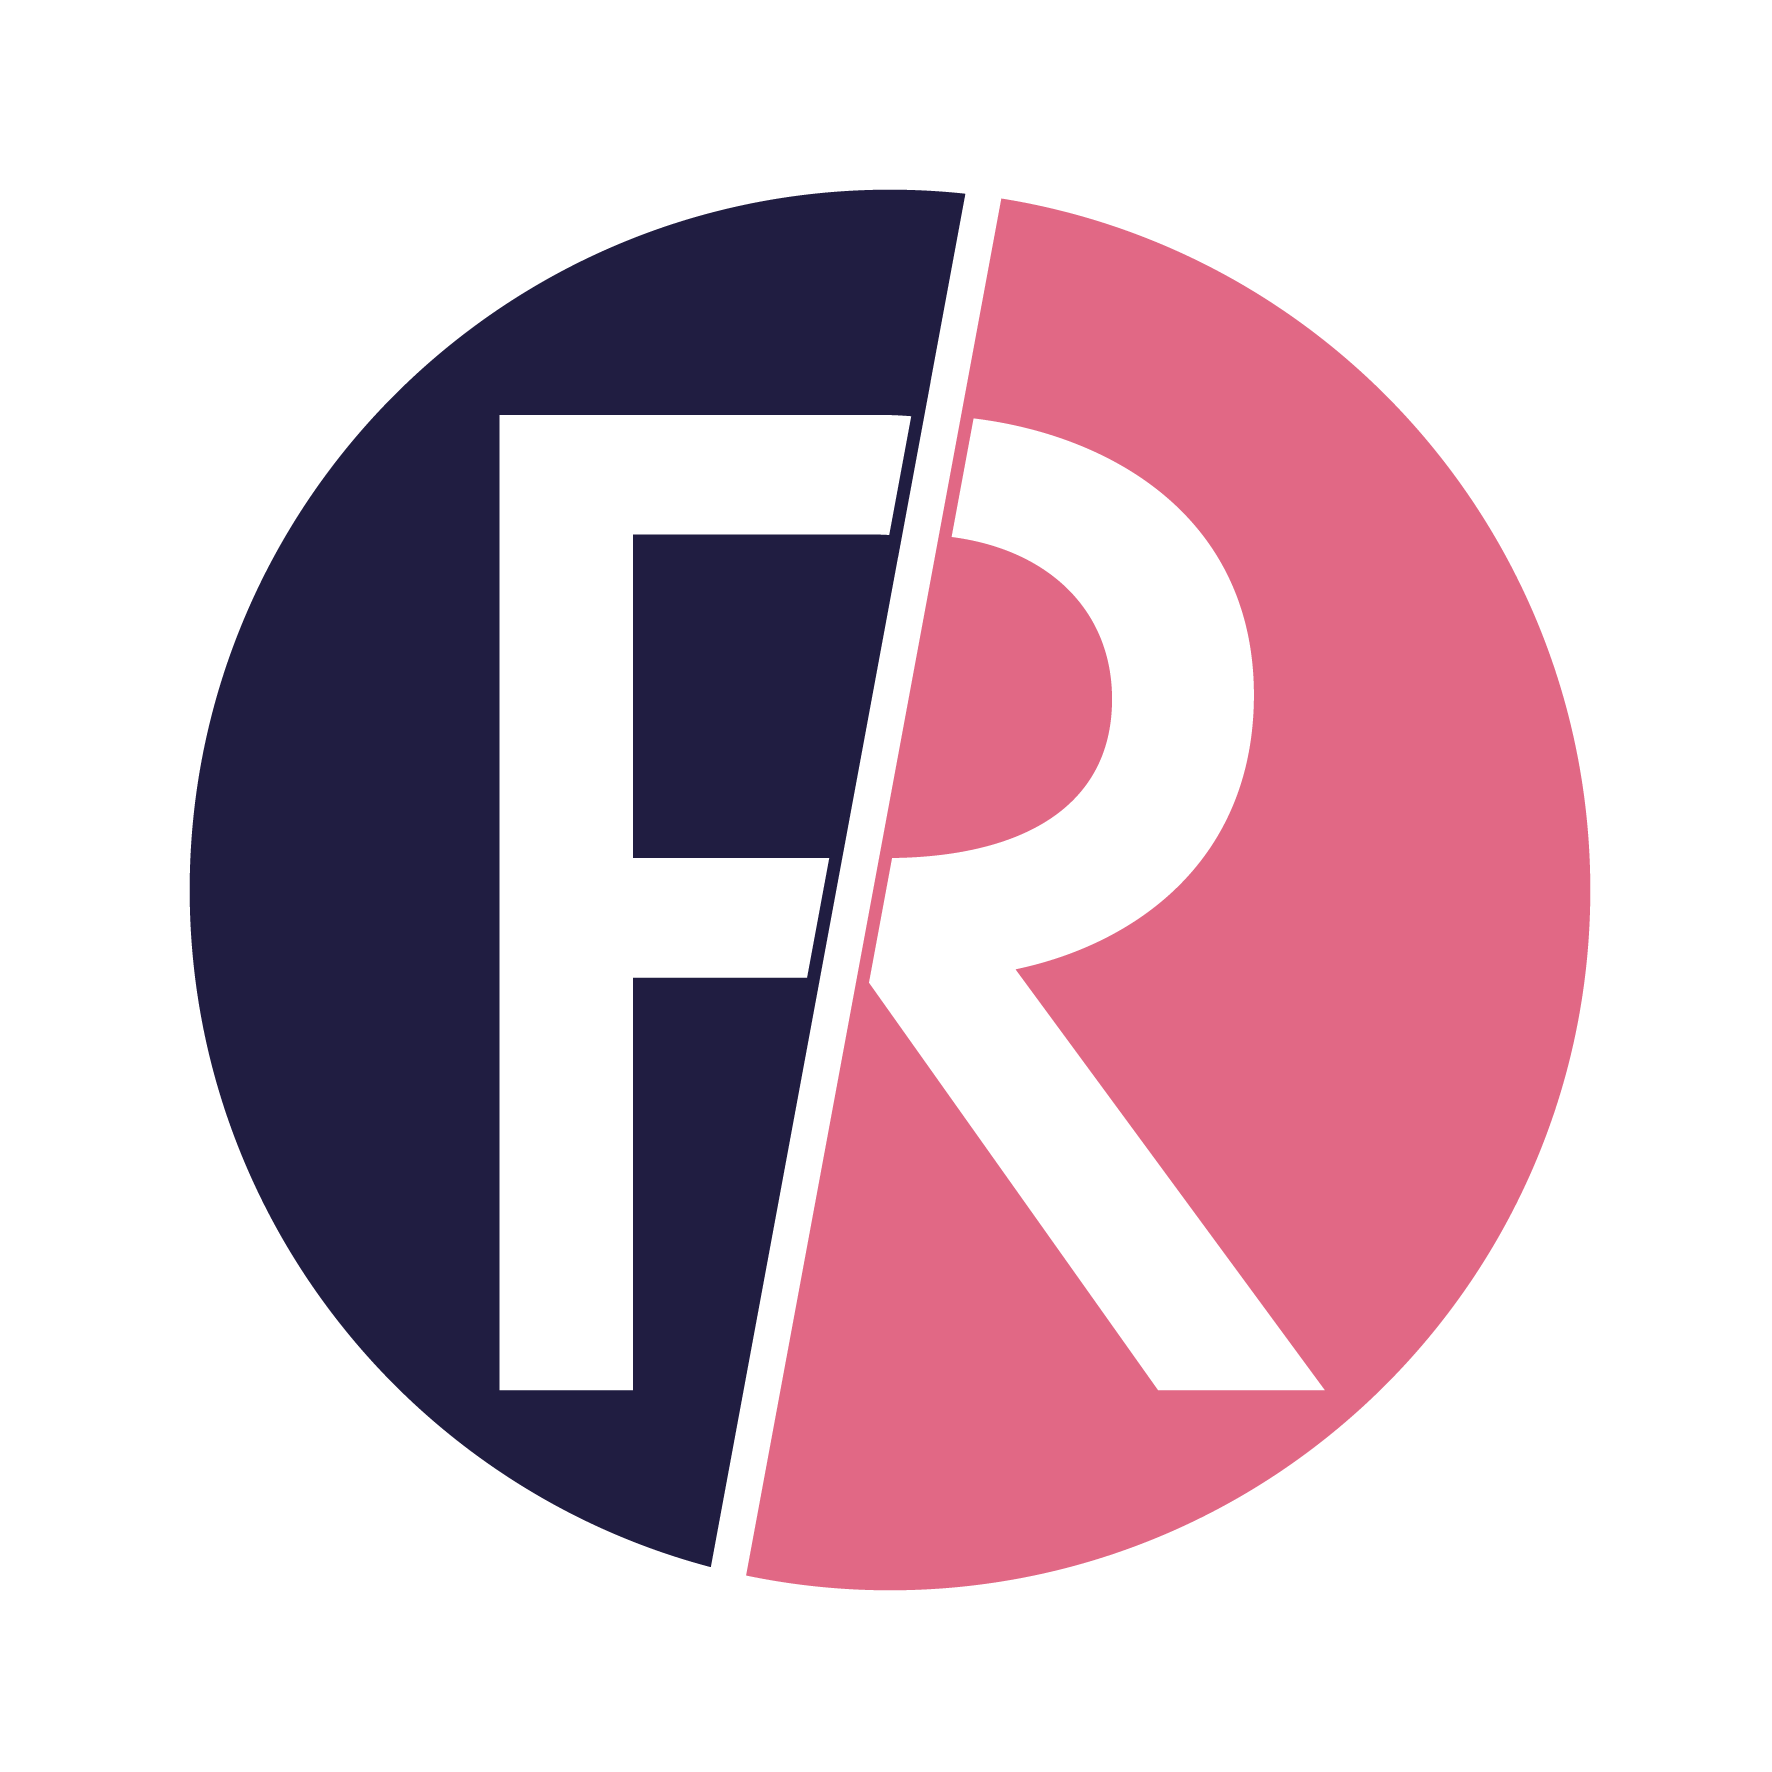 FR Logo-01 (Transparent)-1.png